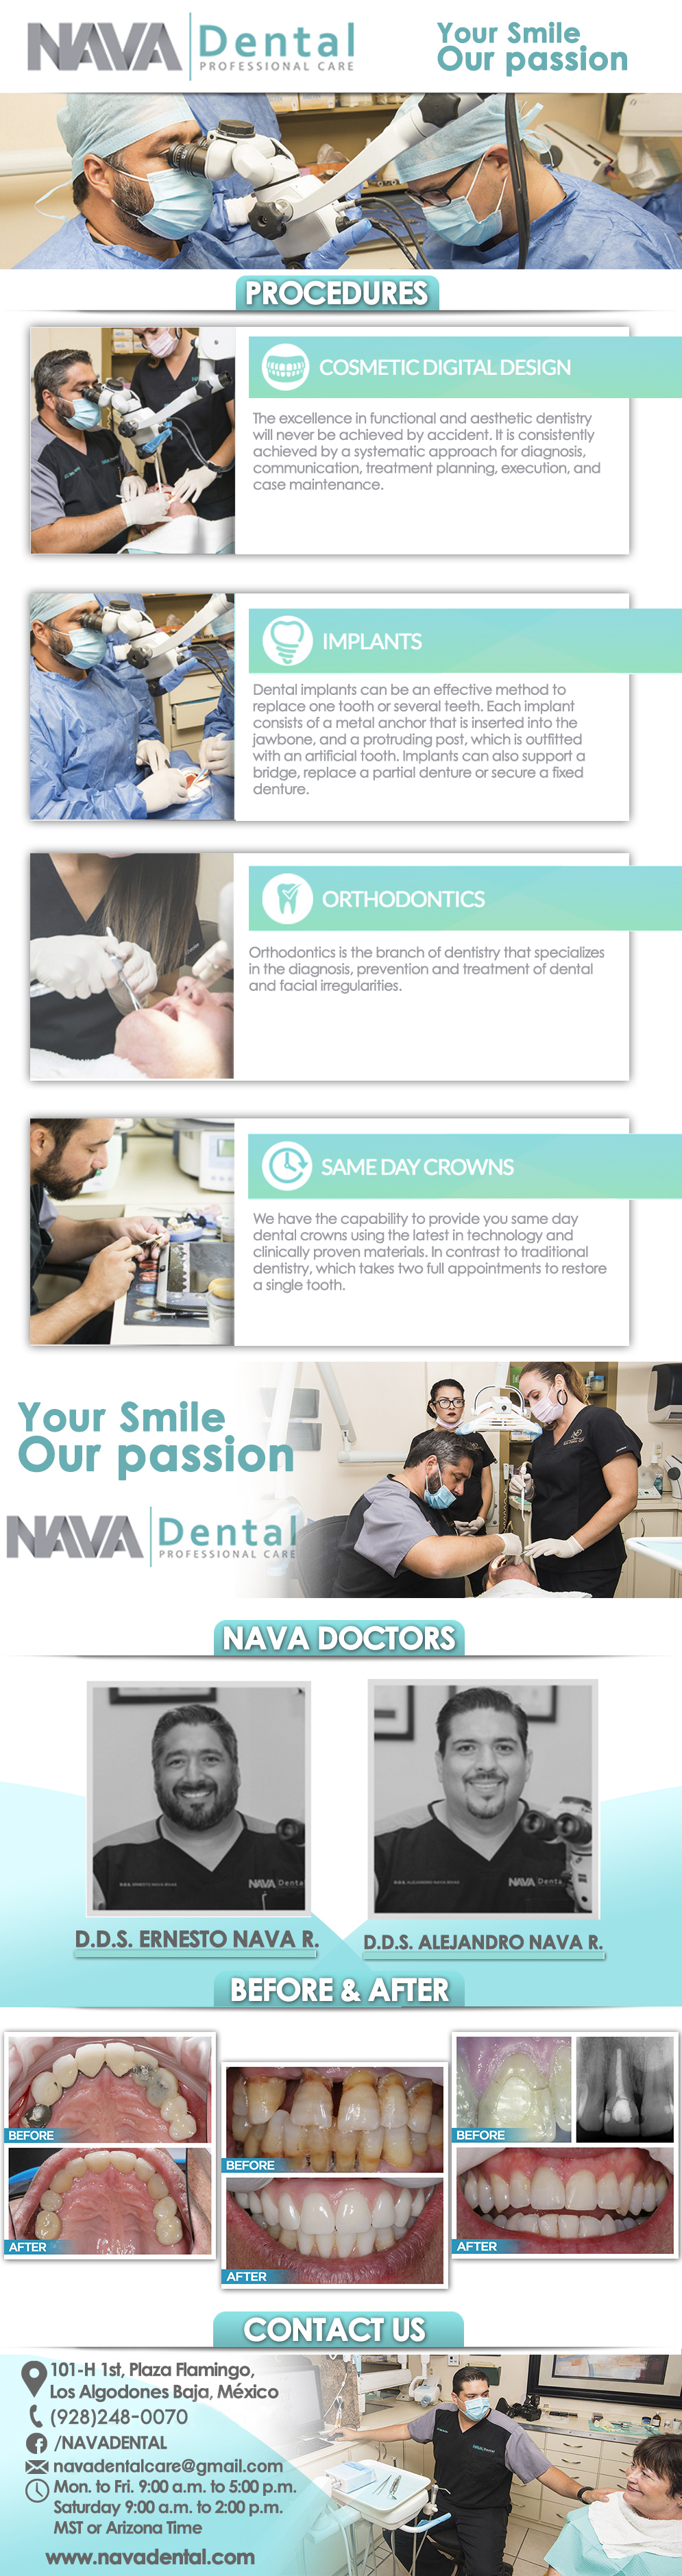 Nava Dental Care in Algodones  in Algodones  General Dentistry and Specialists We offer complete dental services including general dentistry, cosmetic dentistry, periodontics, endodontics, orthodontics and dental implants. Bridges °X-Rays °Porcelain Veneers °Metal Crowns °Dental Bonding °Deep Cleaning °Denture Repair °Traditional Acrylic Dentures °Prescriptions °Root Canals °Metal Bridges °White Fillings °Root Canal Therapy Relines (Hard or Soft) °General Oral Surgeries °Porcelain Crowns °Flexible Partials °Composite Posts °Teeth Whitening °Extractions °Flexible Parials Implants °Porcelain Veneers °Wisdom Tooth Extractions °Metal Posts °Traditional Cleaning °Metal/Acrylic Partials °Immediate Upper and Lower Dentures (Alveoplasty)             General Dentistry and Specialists We offer complete dental services including general dentistry, cosmetic dentistry, periodontics, endodontics, orthodontics and dental implants. Bridges °X-Rays °Porcelain Veneers °Metal Crowns °Dental Bonding °Deep Cleaning °Denture Repair °Traditional Acrylic Dentures °Prescriptions °Root Canals °Metal Bridges °White Fillings °Root Canal Therapy Relines (Hard or Soft) °General Oral Surgeries °Porcelain Crowns °Flexible Partials °Composite Posts °Teeth Whitening °Extractions °Flexible Parials Implants °Porcelain Veneers °Wisdom Tooth Extractions °Metal Posts °Traditional Cleaning °Metal/Acrylic Partials °Immediate Upper and Lower Dentures (Alveoplasty)